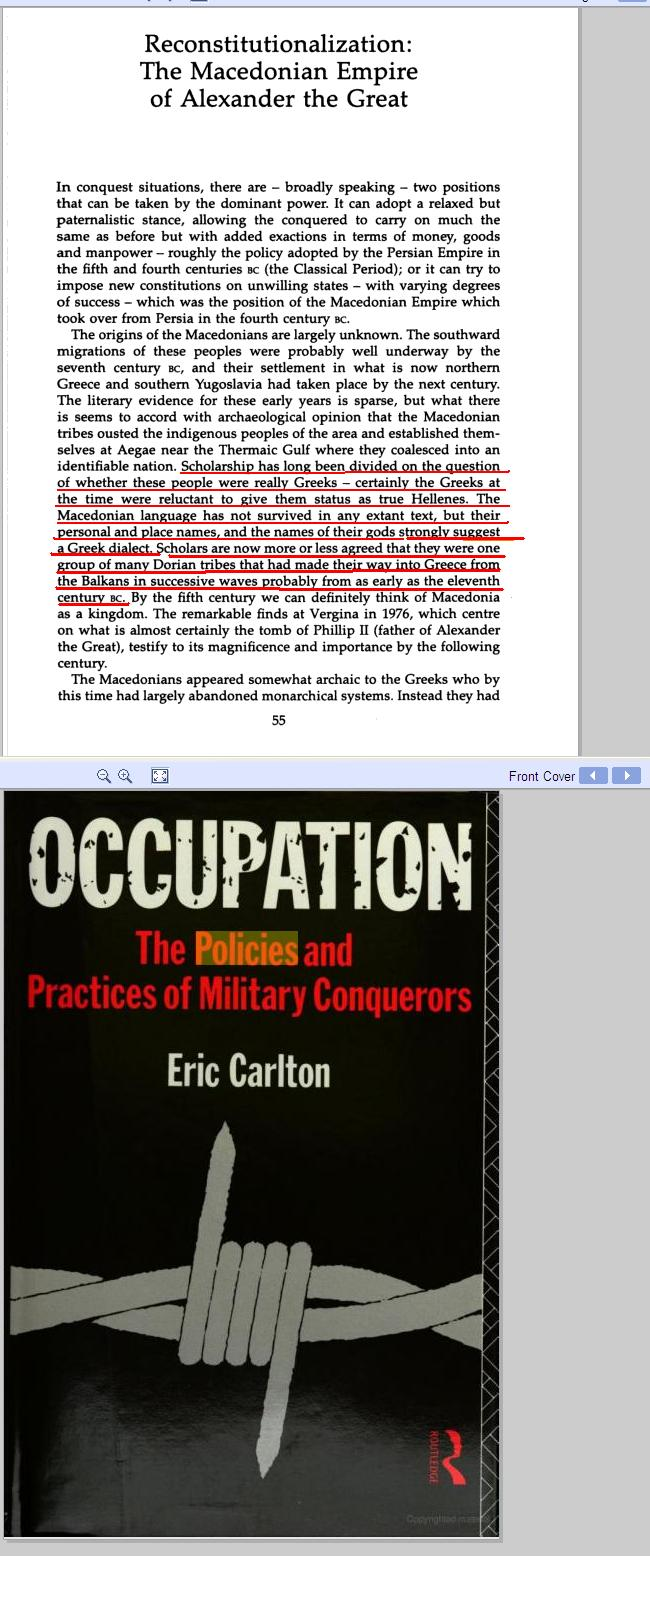 occupation militarypractices ofmilitary conquerors Occupation  The policies and practices of Military Conquerors by Eric Carlton